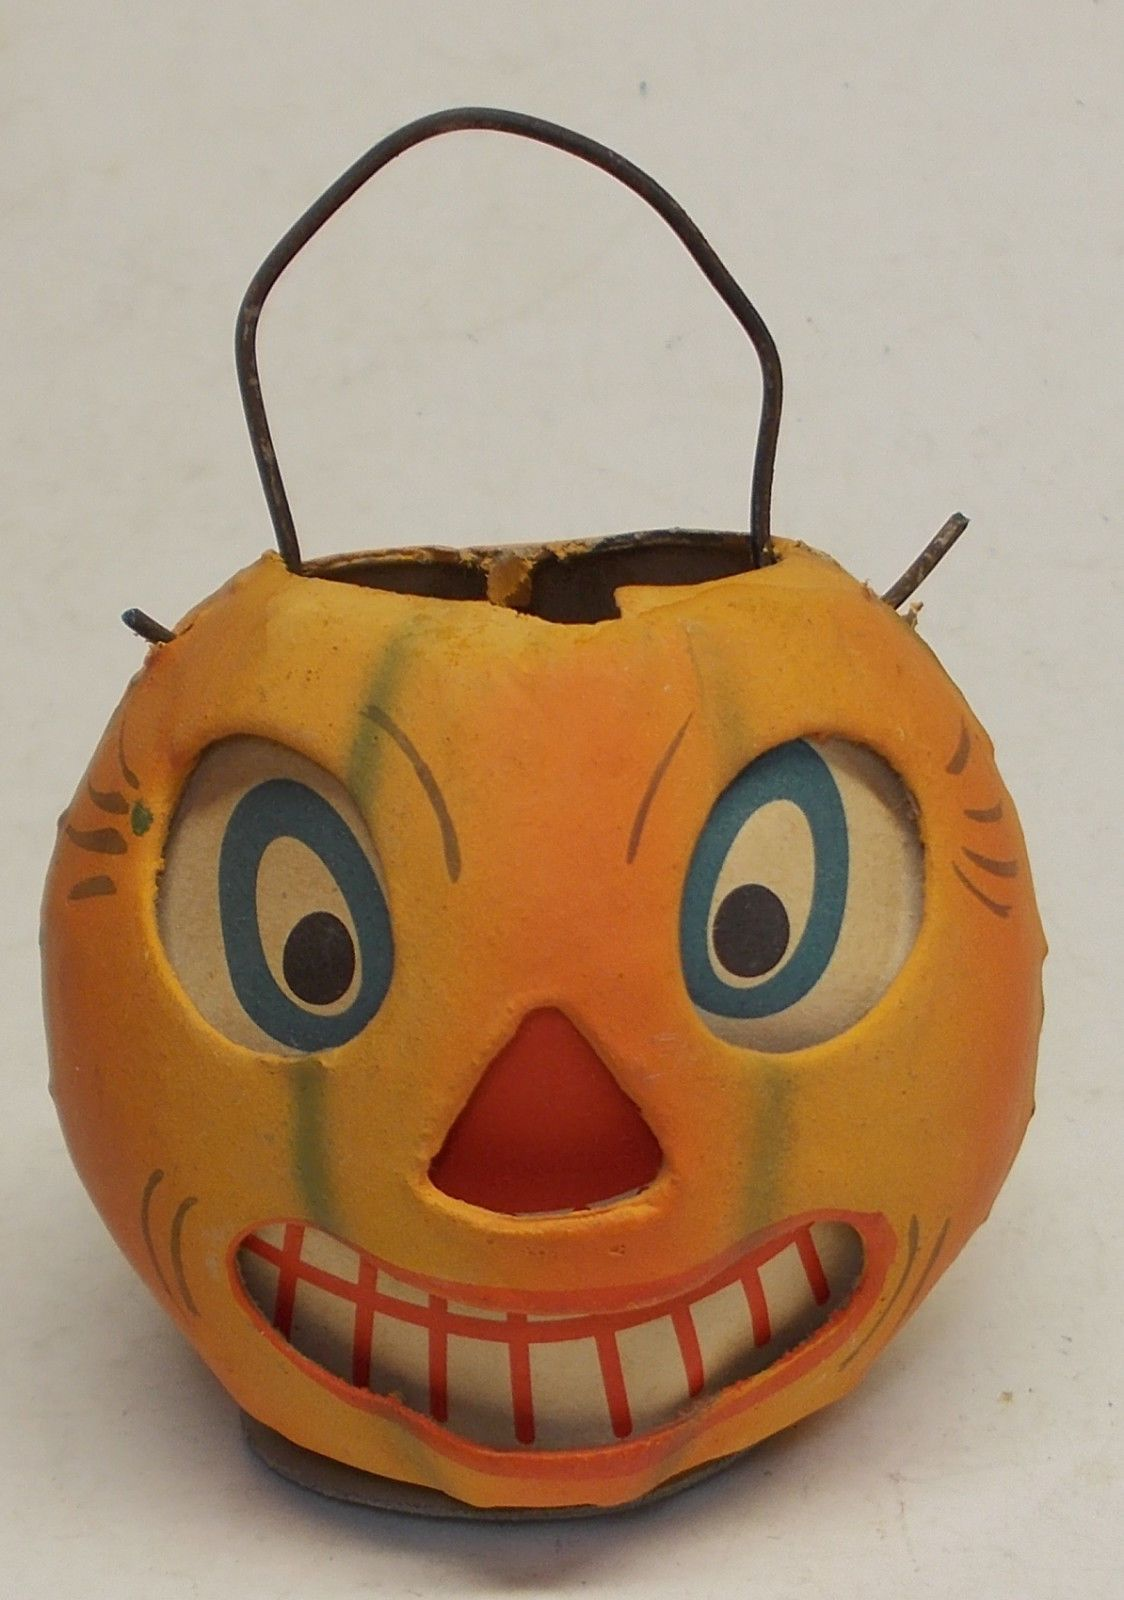 Vintage Halloween Striped Jack O Lantern 1940s German JOL Pressed - Homemade Halloween Decorations Pinterest